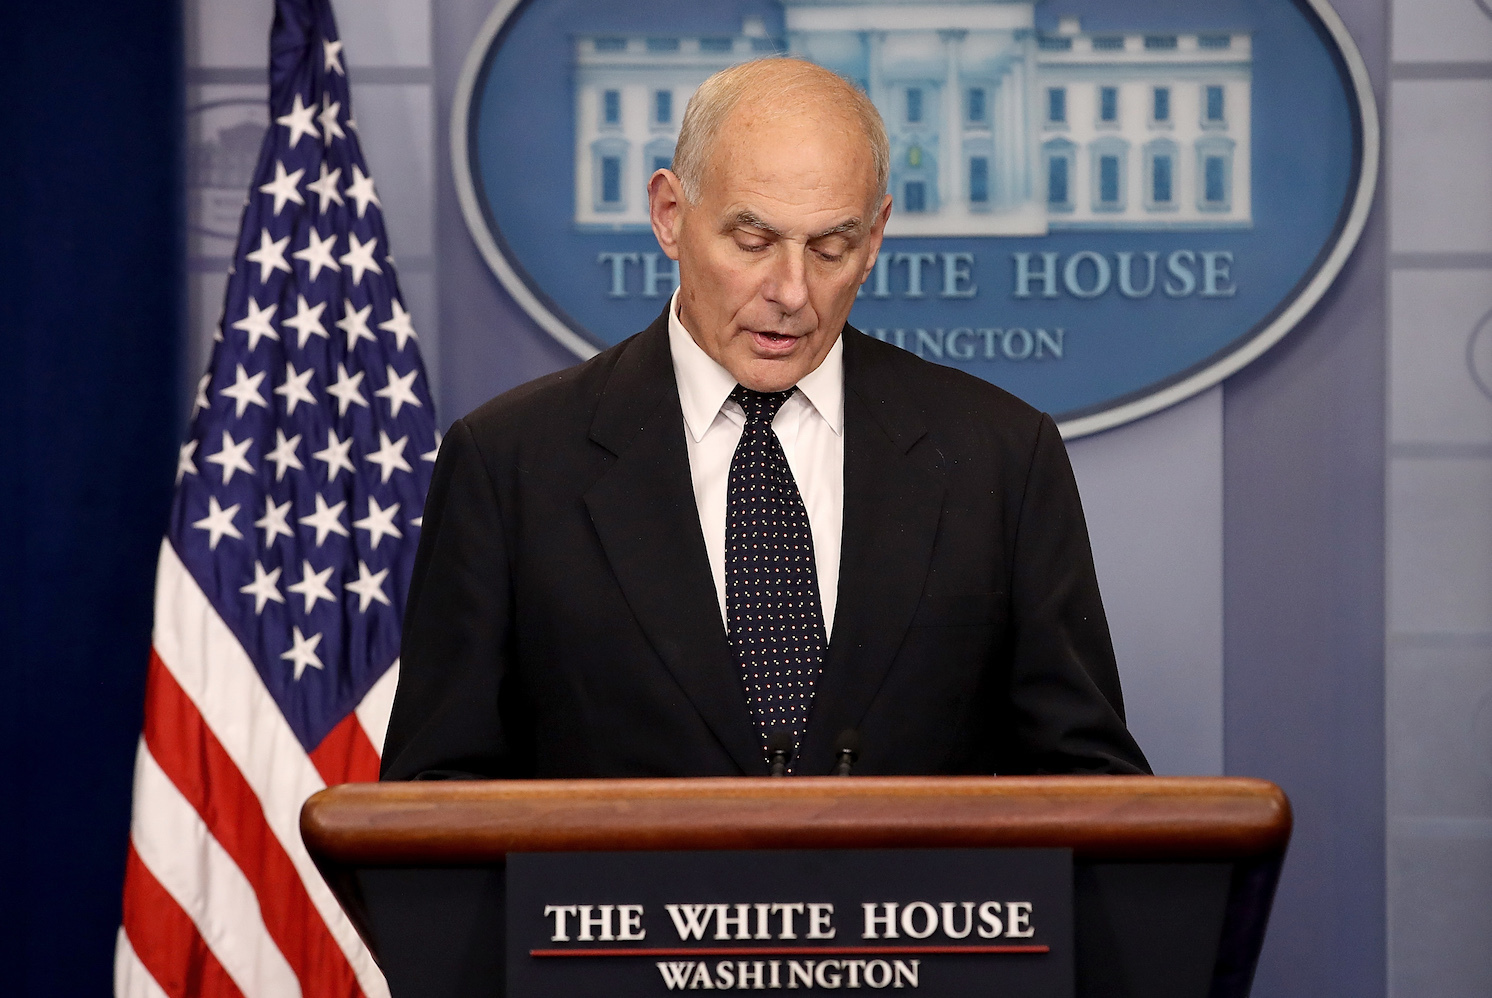 Washington Post afirma que John Kelly declaró que México no pagará el muro